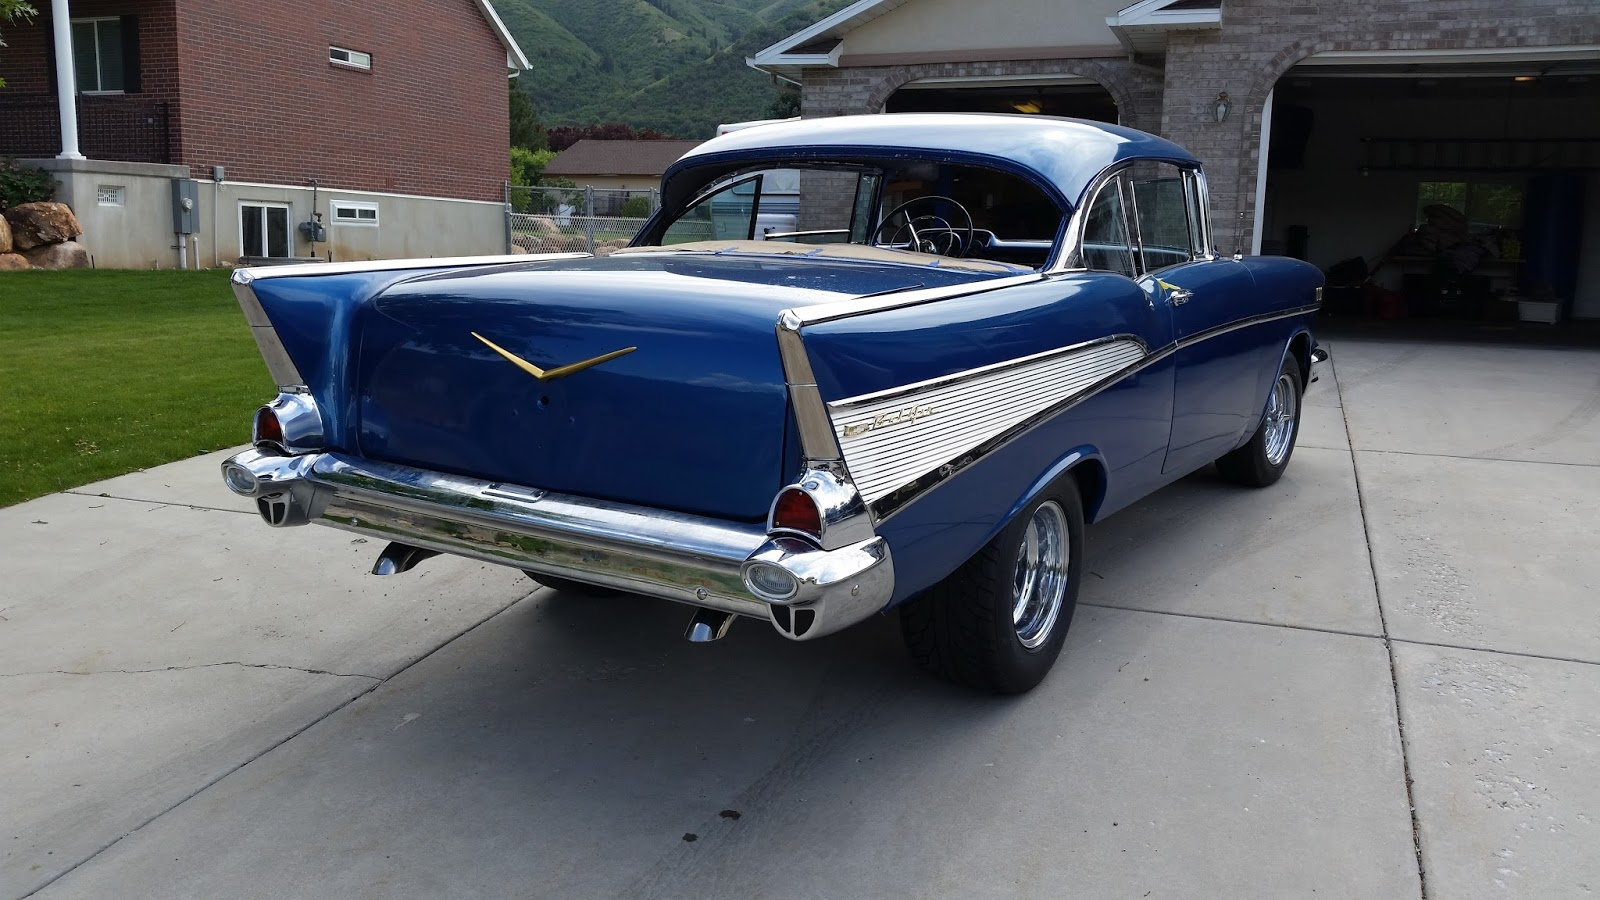 1957 Chevy Belair Restoration Bel Air Front Suspension I Have Been Thinking A Lot About How To Do The Upholstery Work For Car Over Past 2 Plus Years And Now It Is Time See If Can